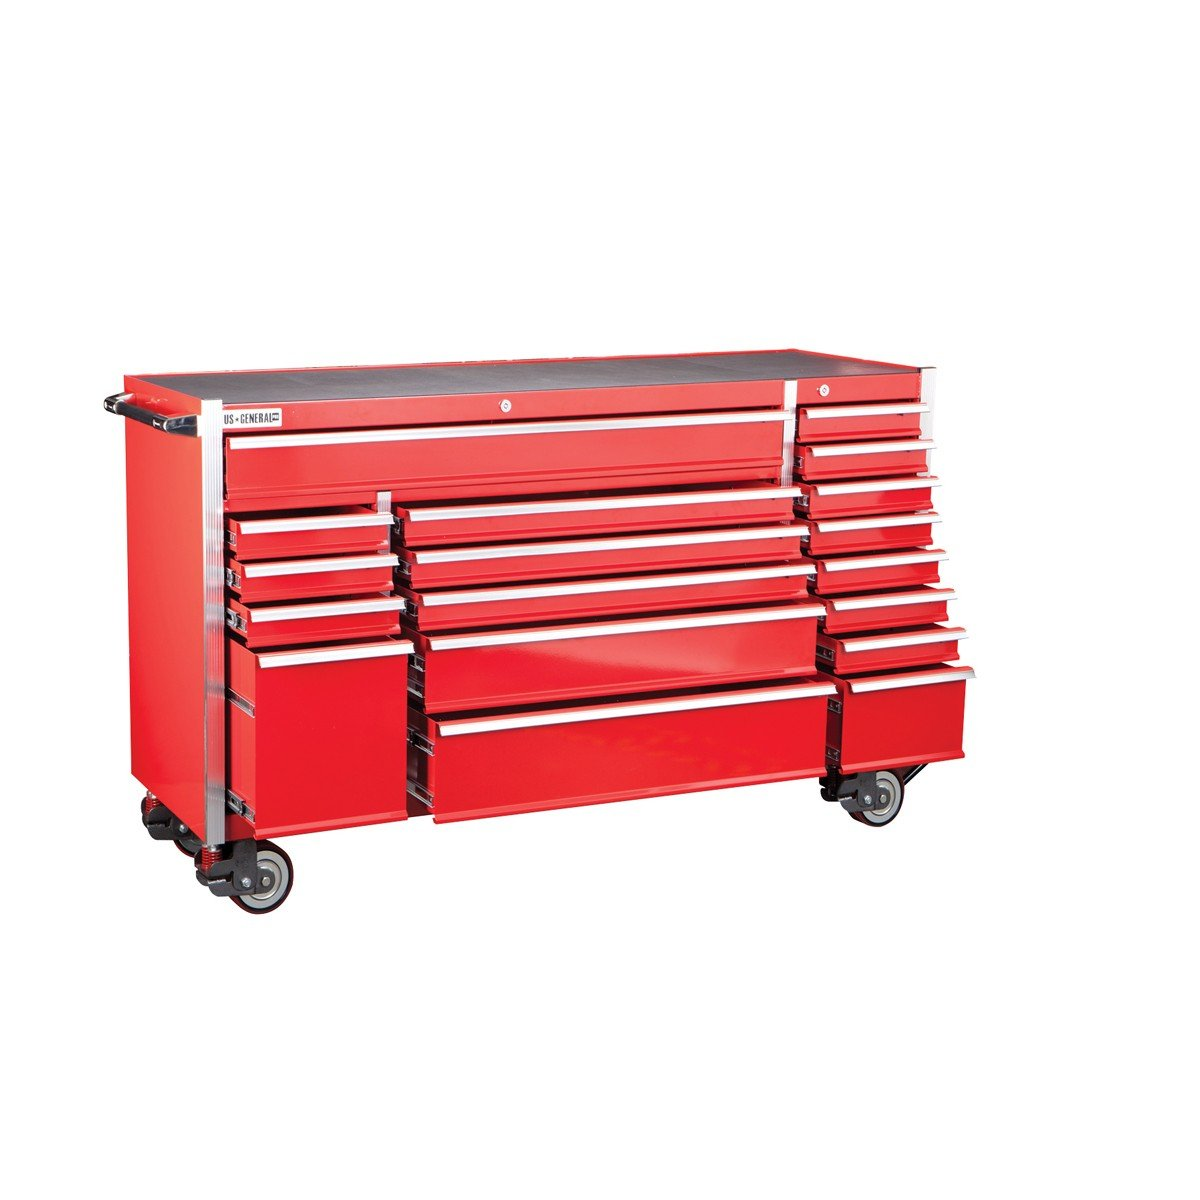 72 Inch 18 Drawer Glossy Red Industrial Roller Cabinet; Loading Capacity of 4602 Lb. by US General B01L0FVUA2